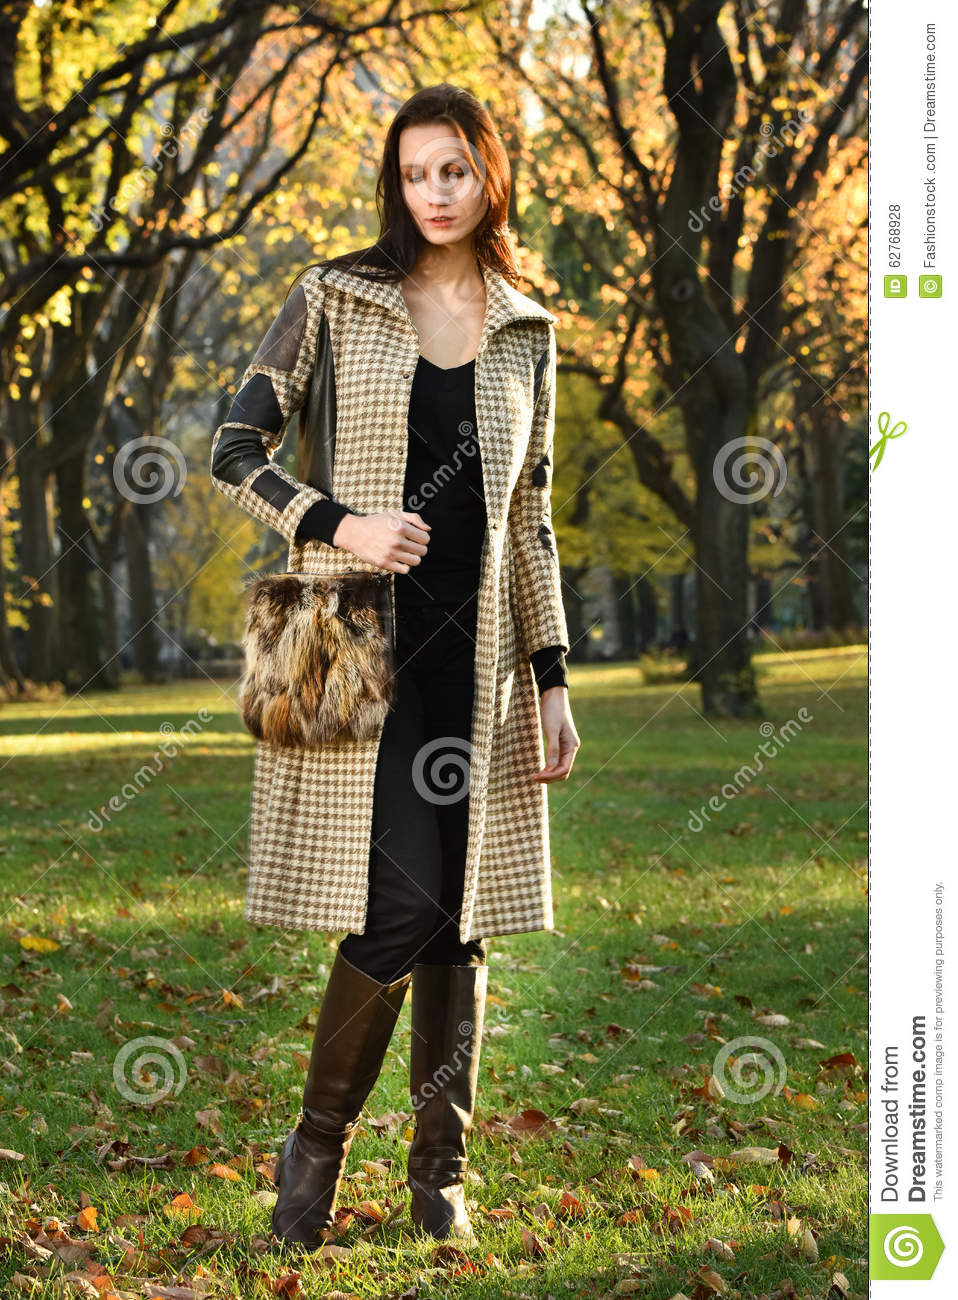 Comely Fall Fashion Photoshoot